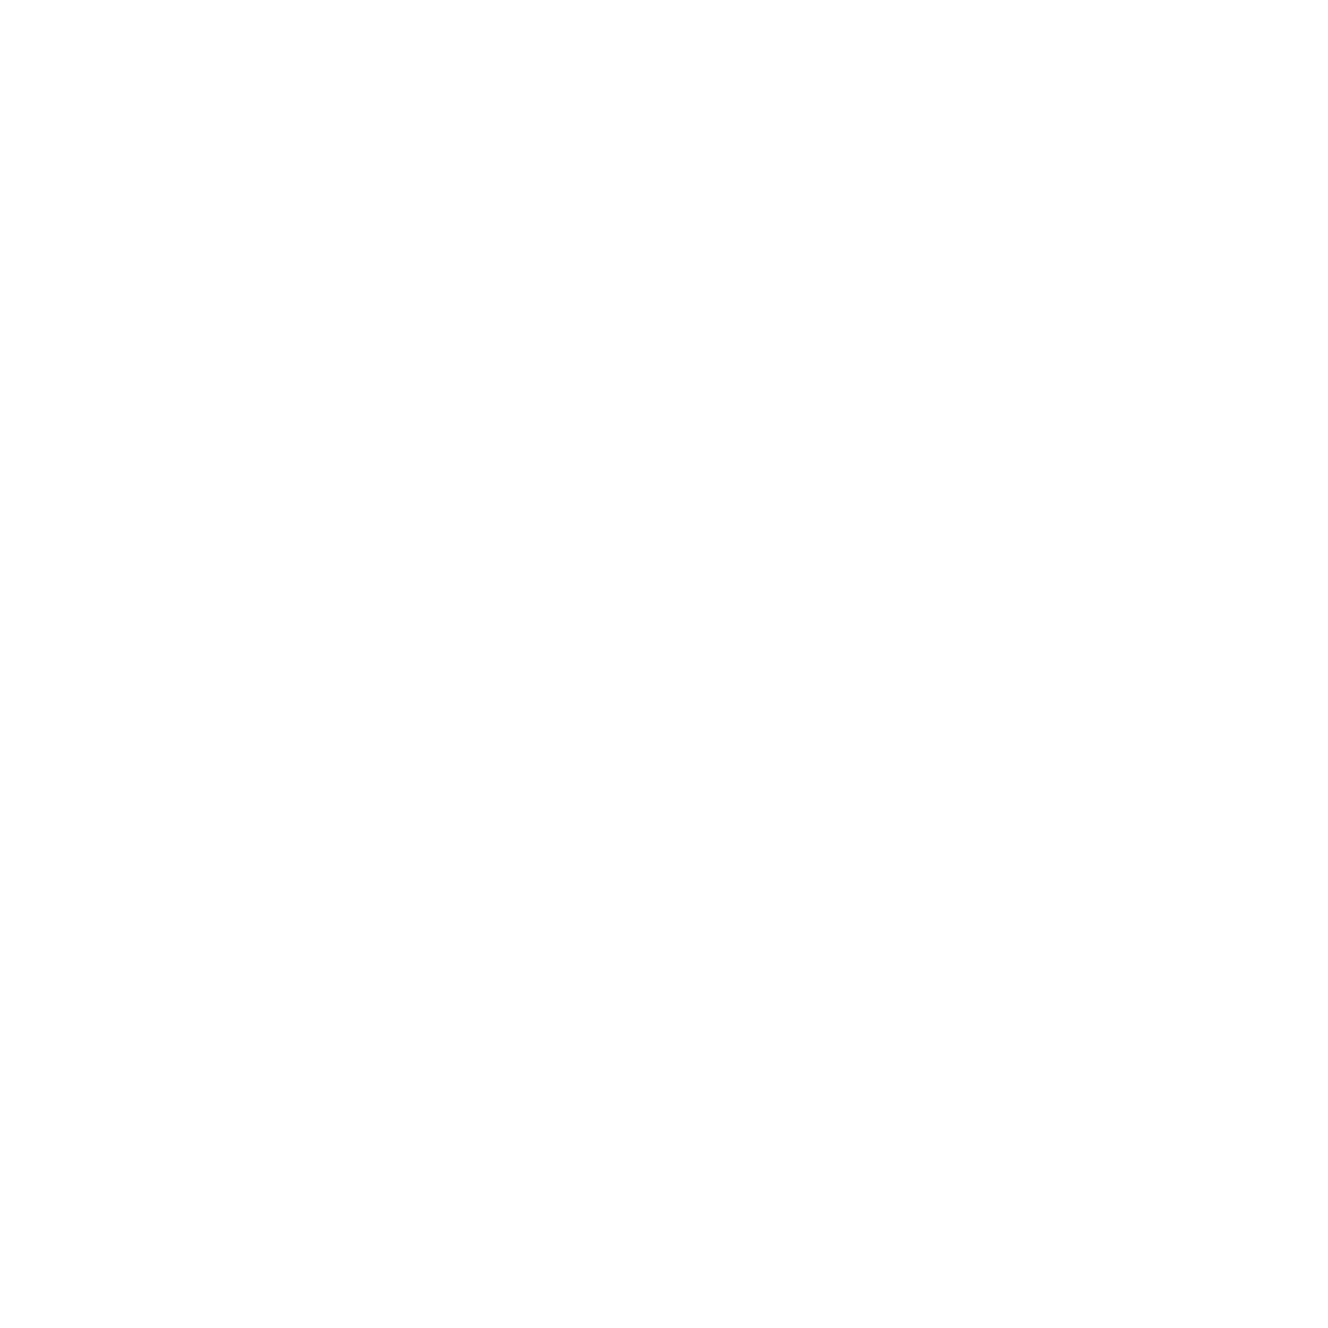 George S Fade Salons Men And Women Hair Cuts Highlights Waxing Coloring